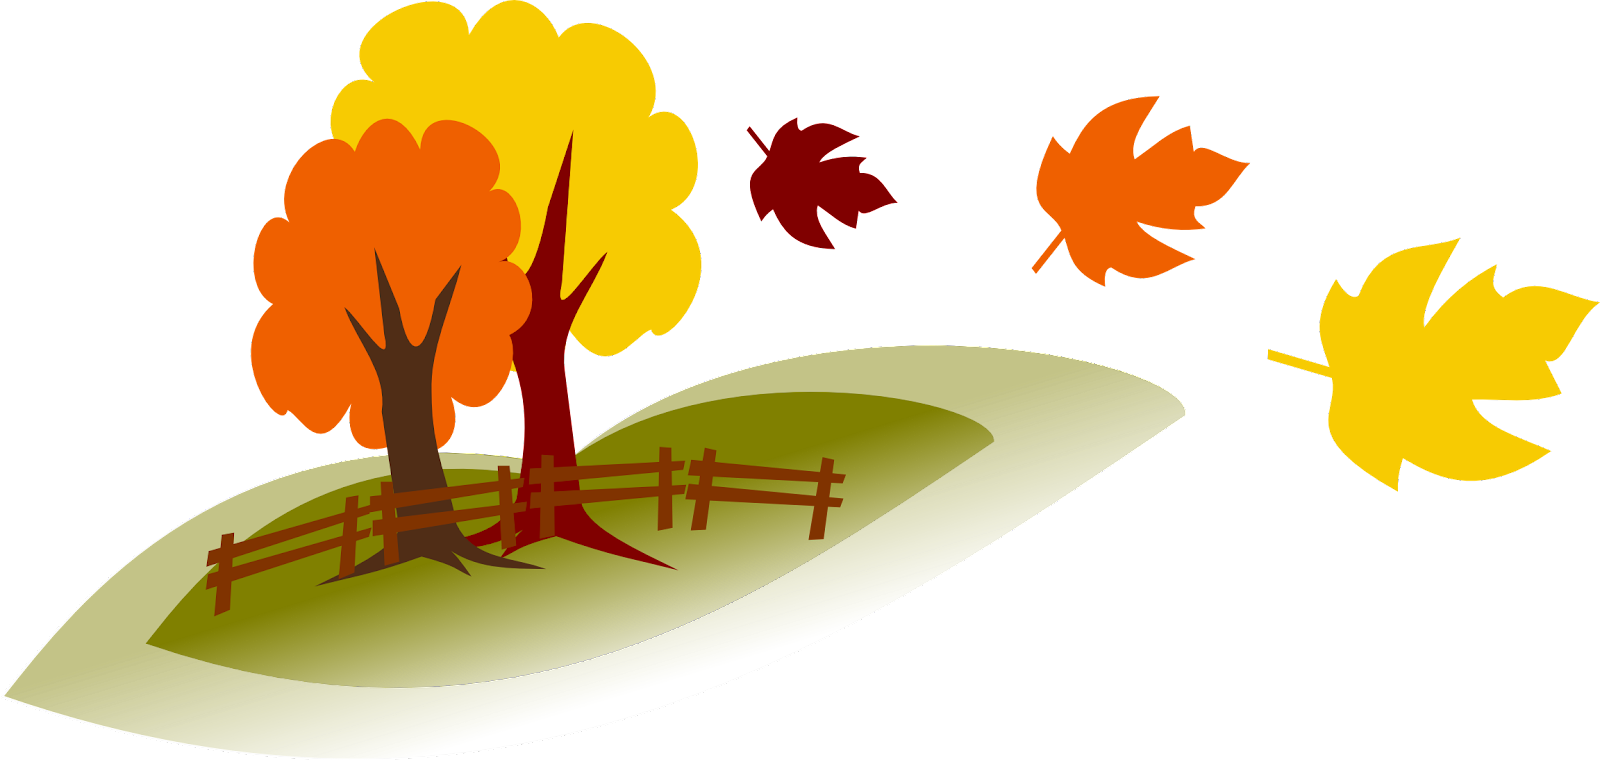 File:Design-fall.png